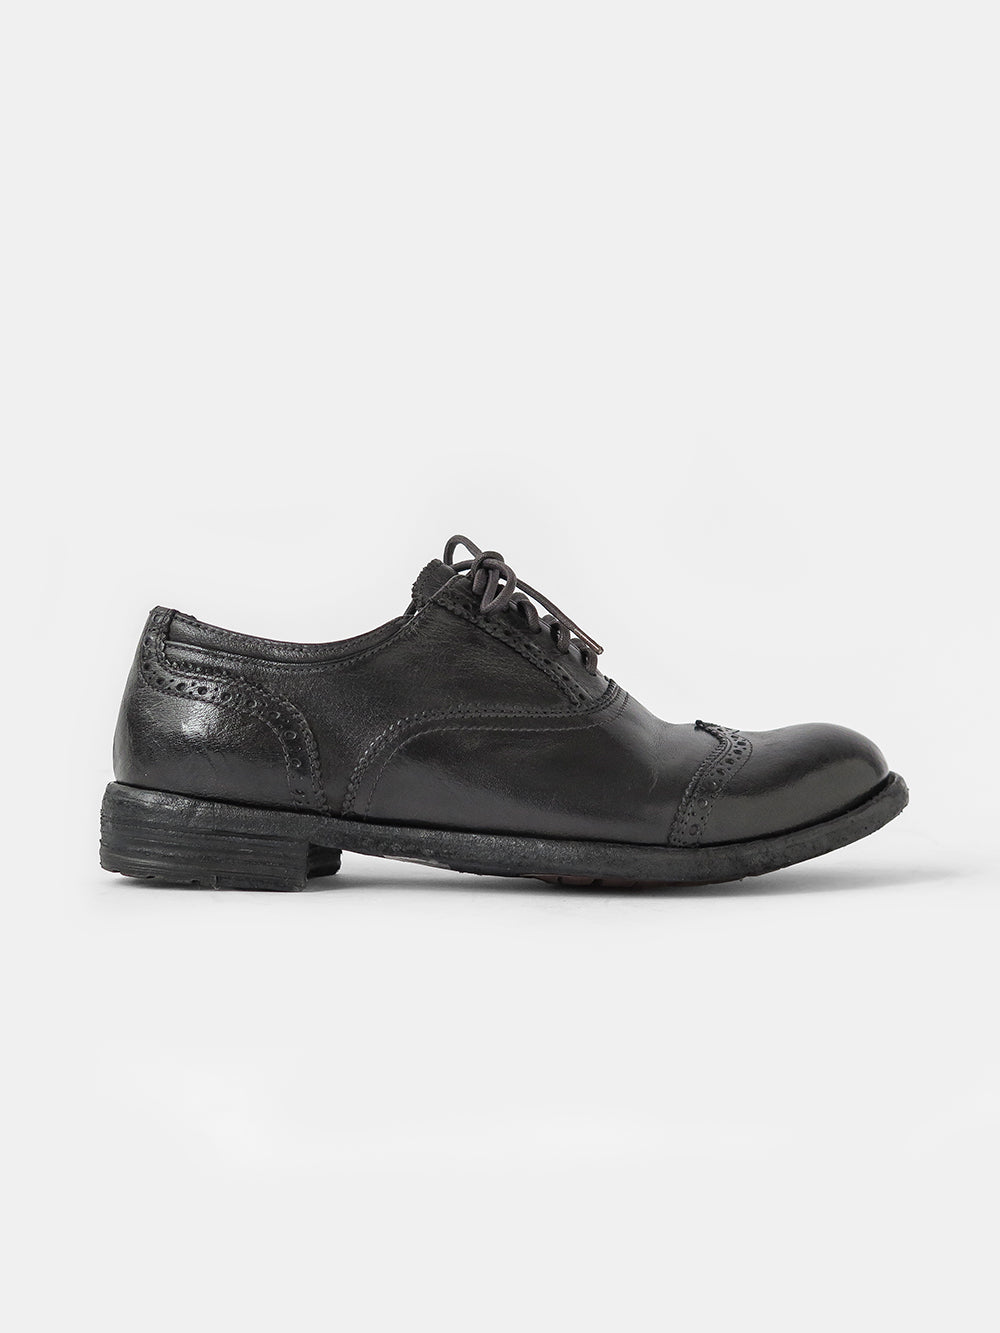 officine creative lexikon oxford in magnete